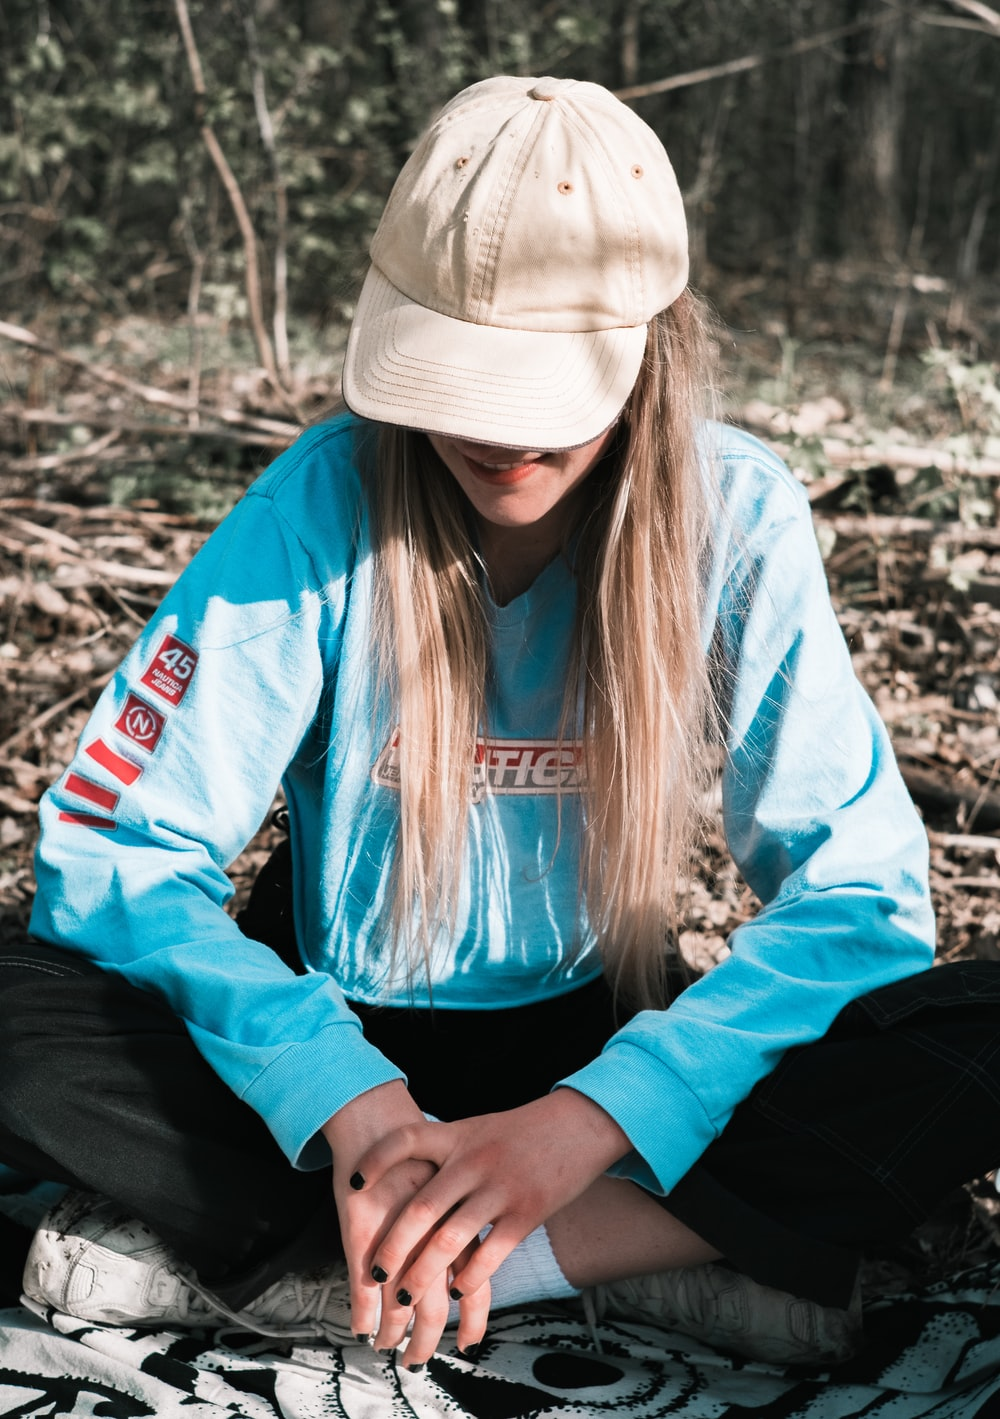 woman in blue jacket and white knit cap sitting on ground